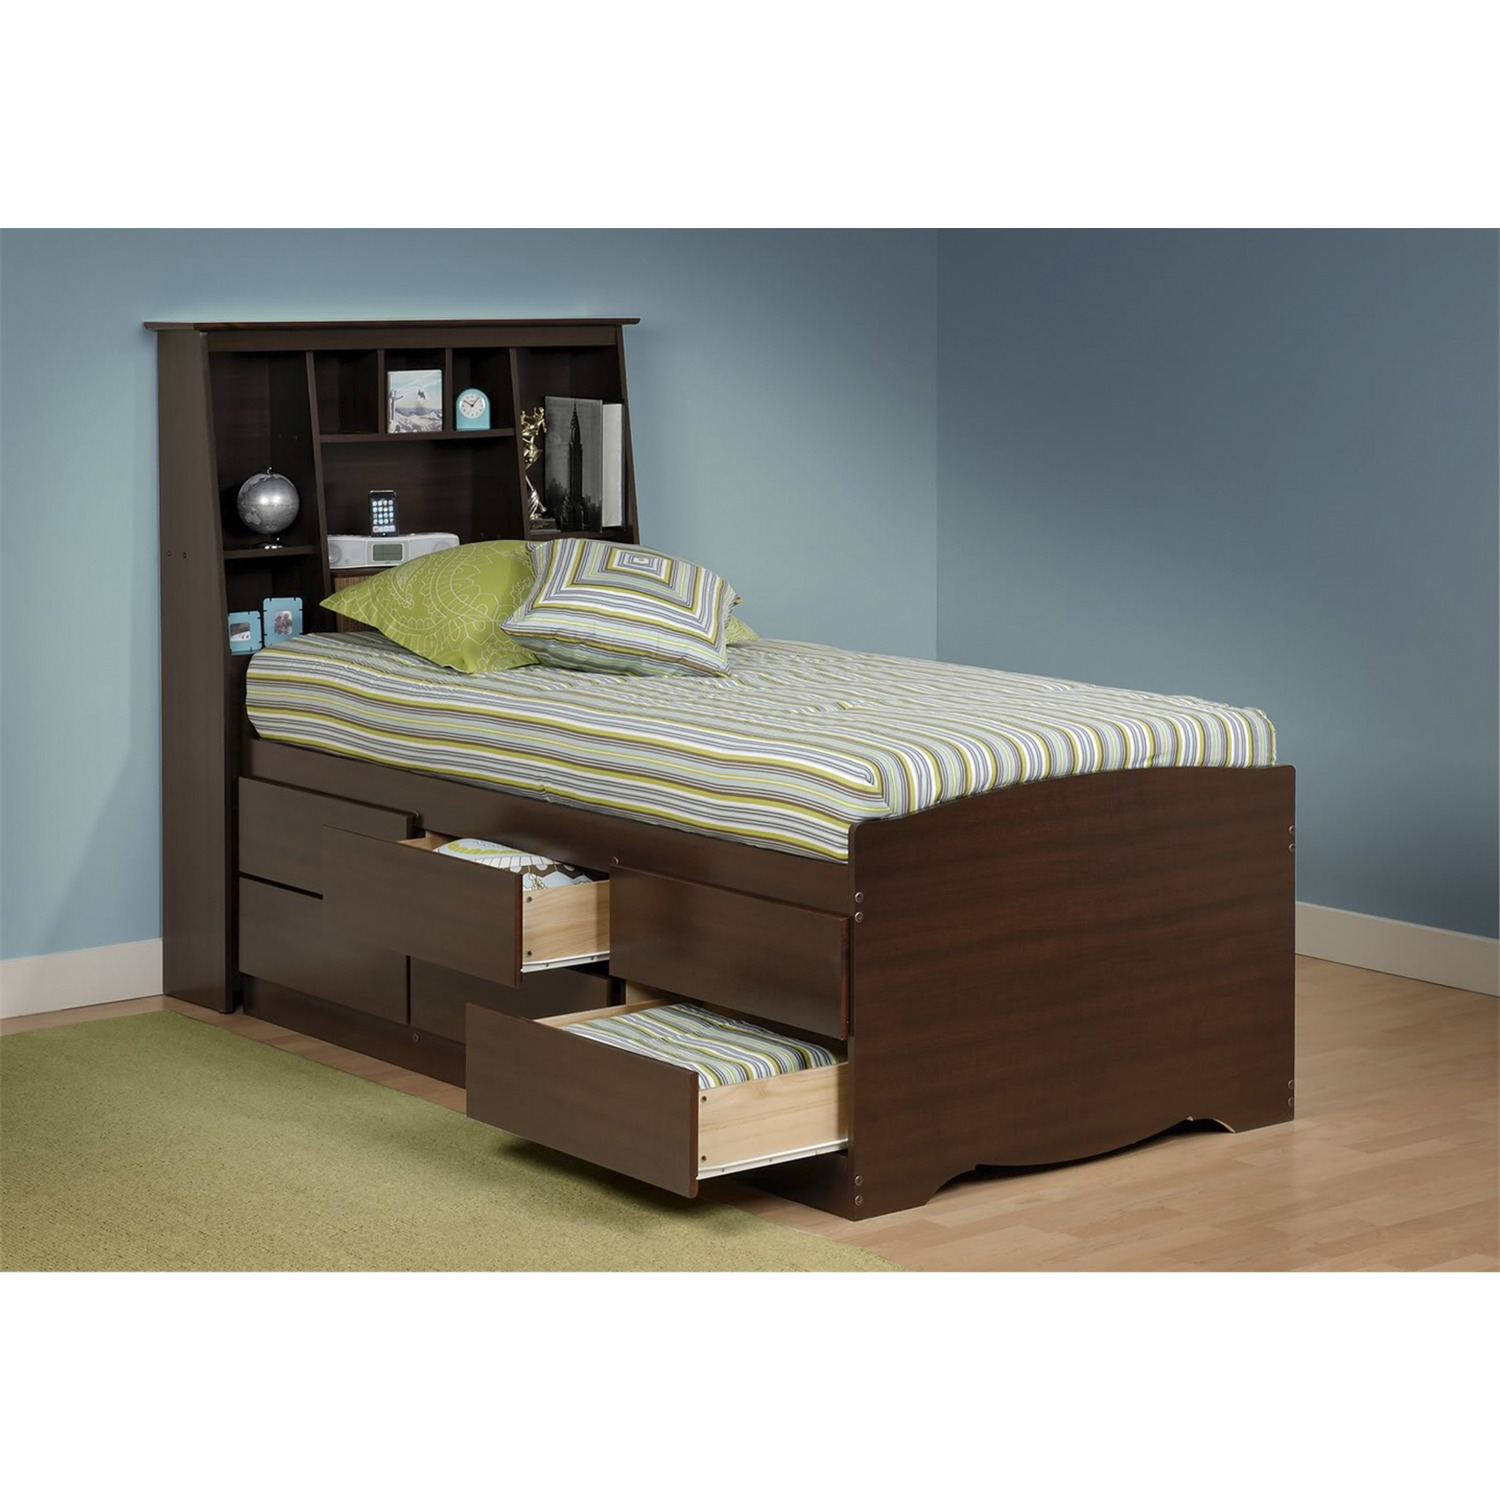 Bookcase Platform Bed with Storage